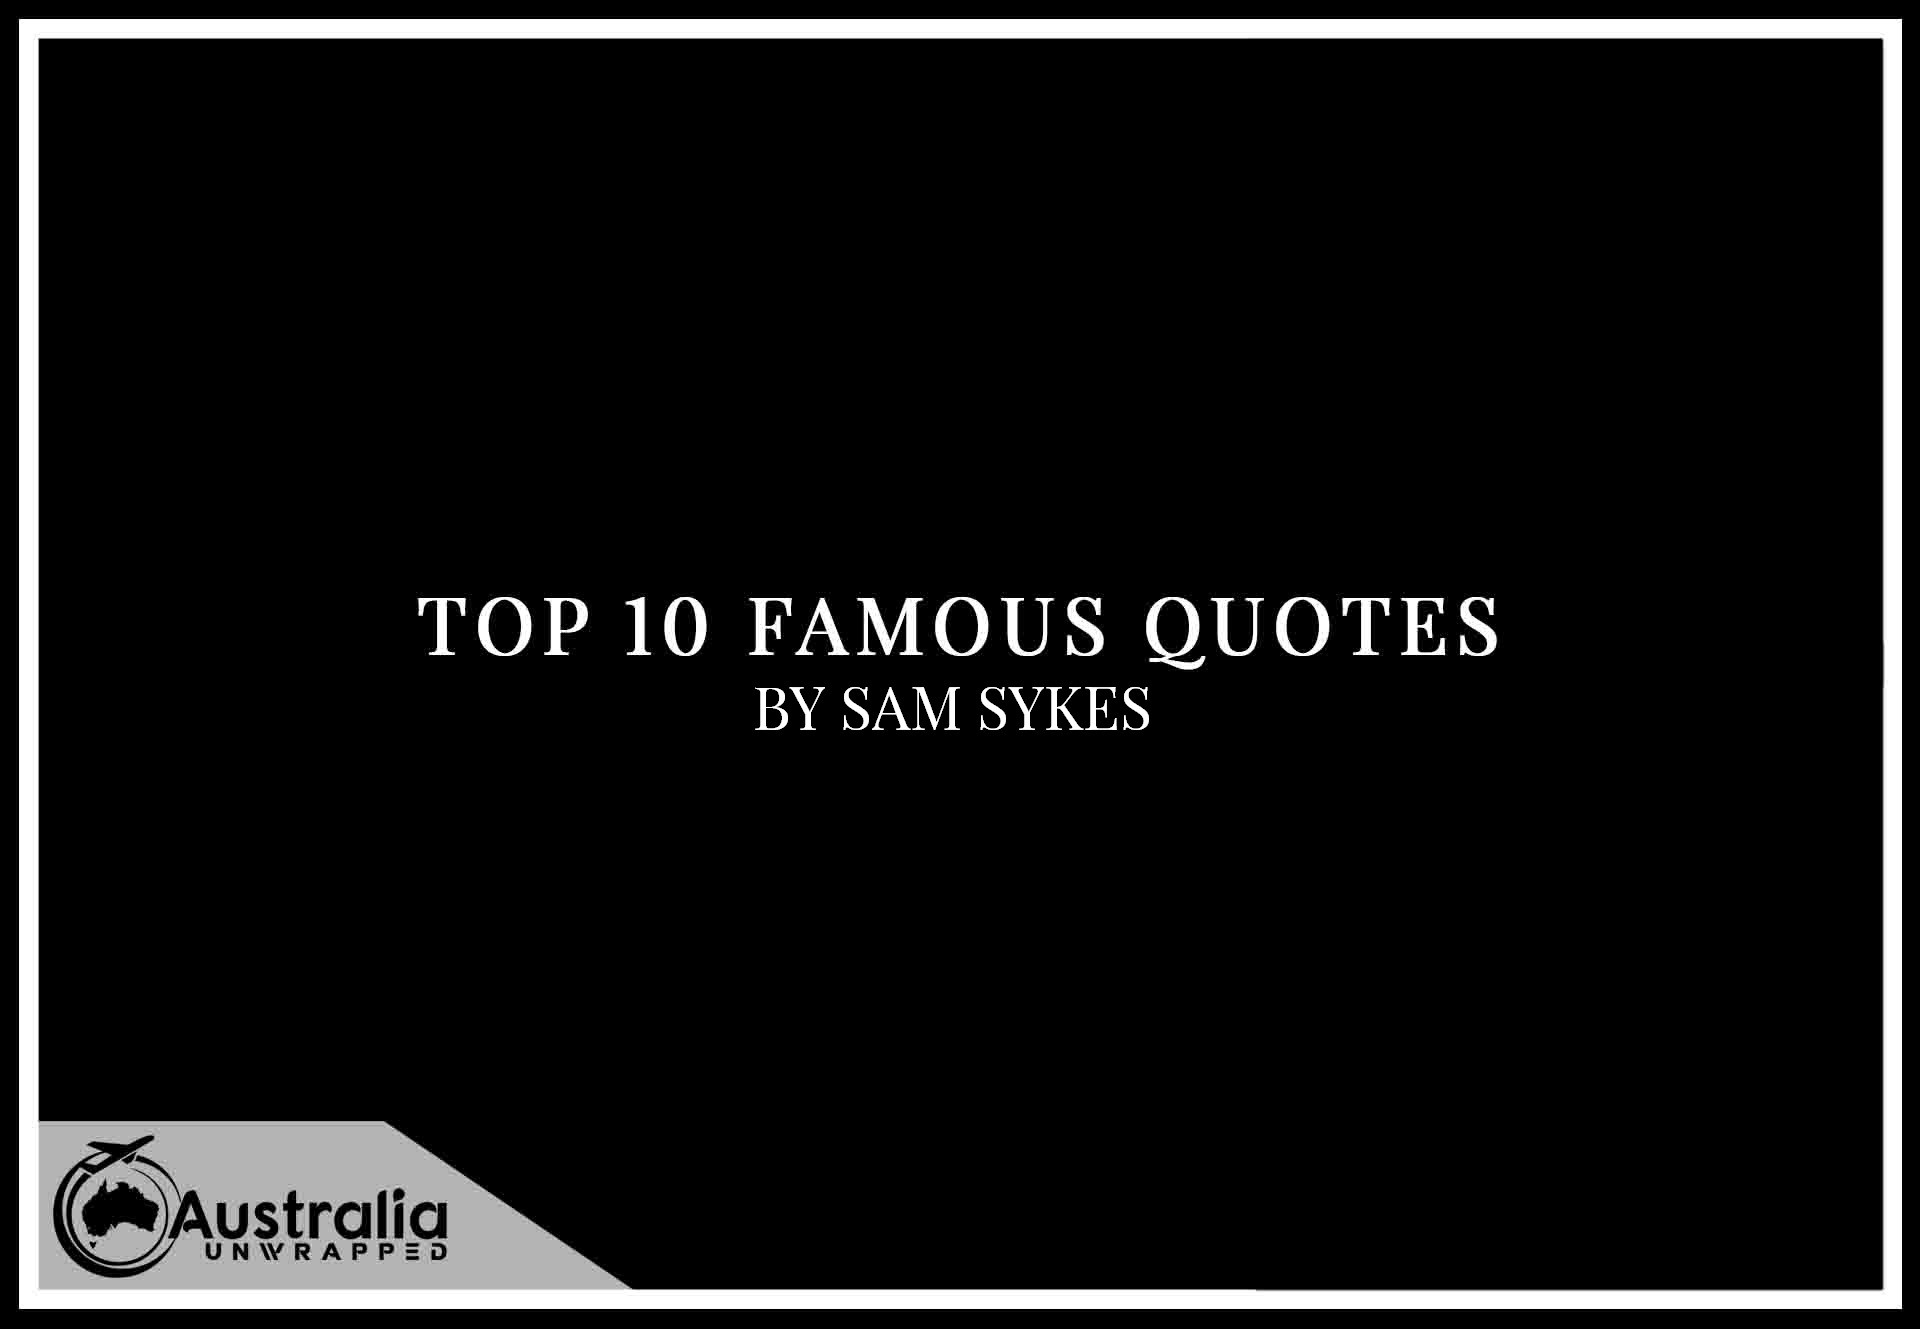 Top 10 Famous Quotes by Author Sam Sykes